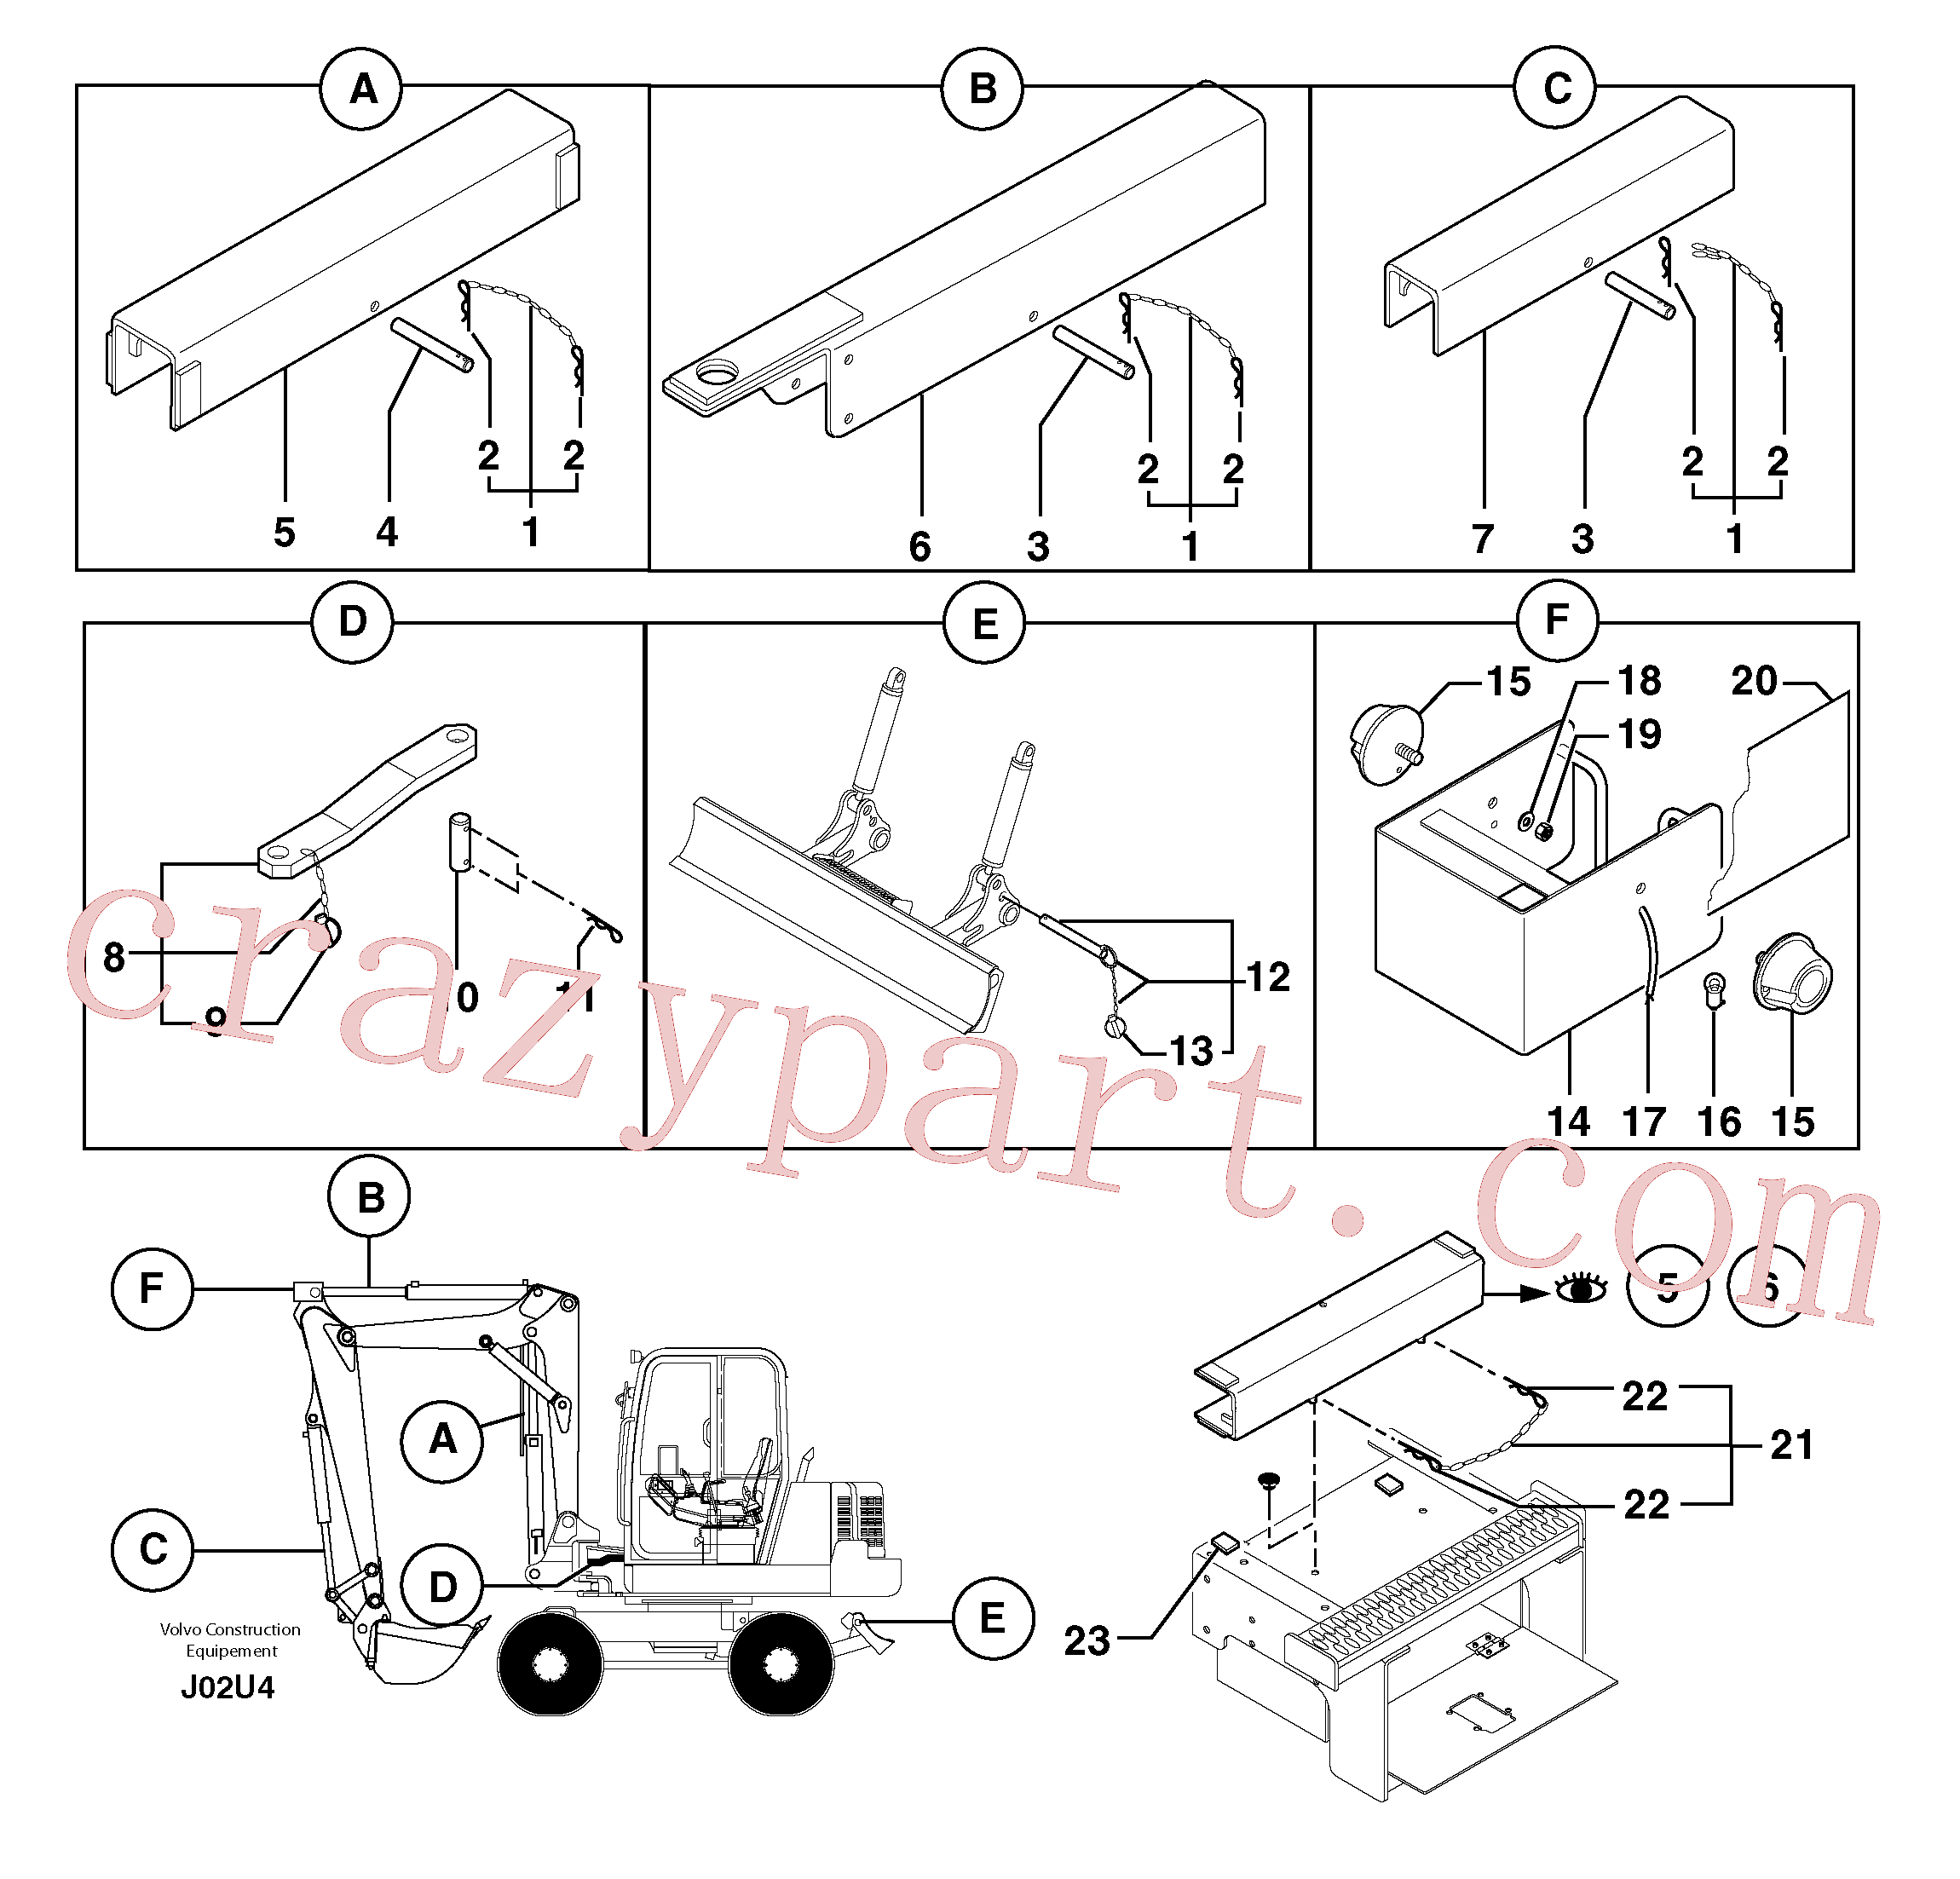 PJ3760091 for Volvo Safety device(J02U4 assembly)